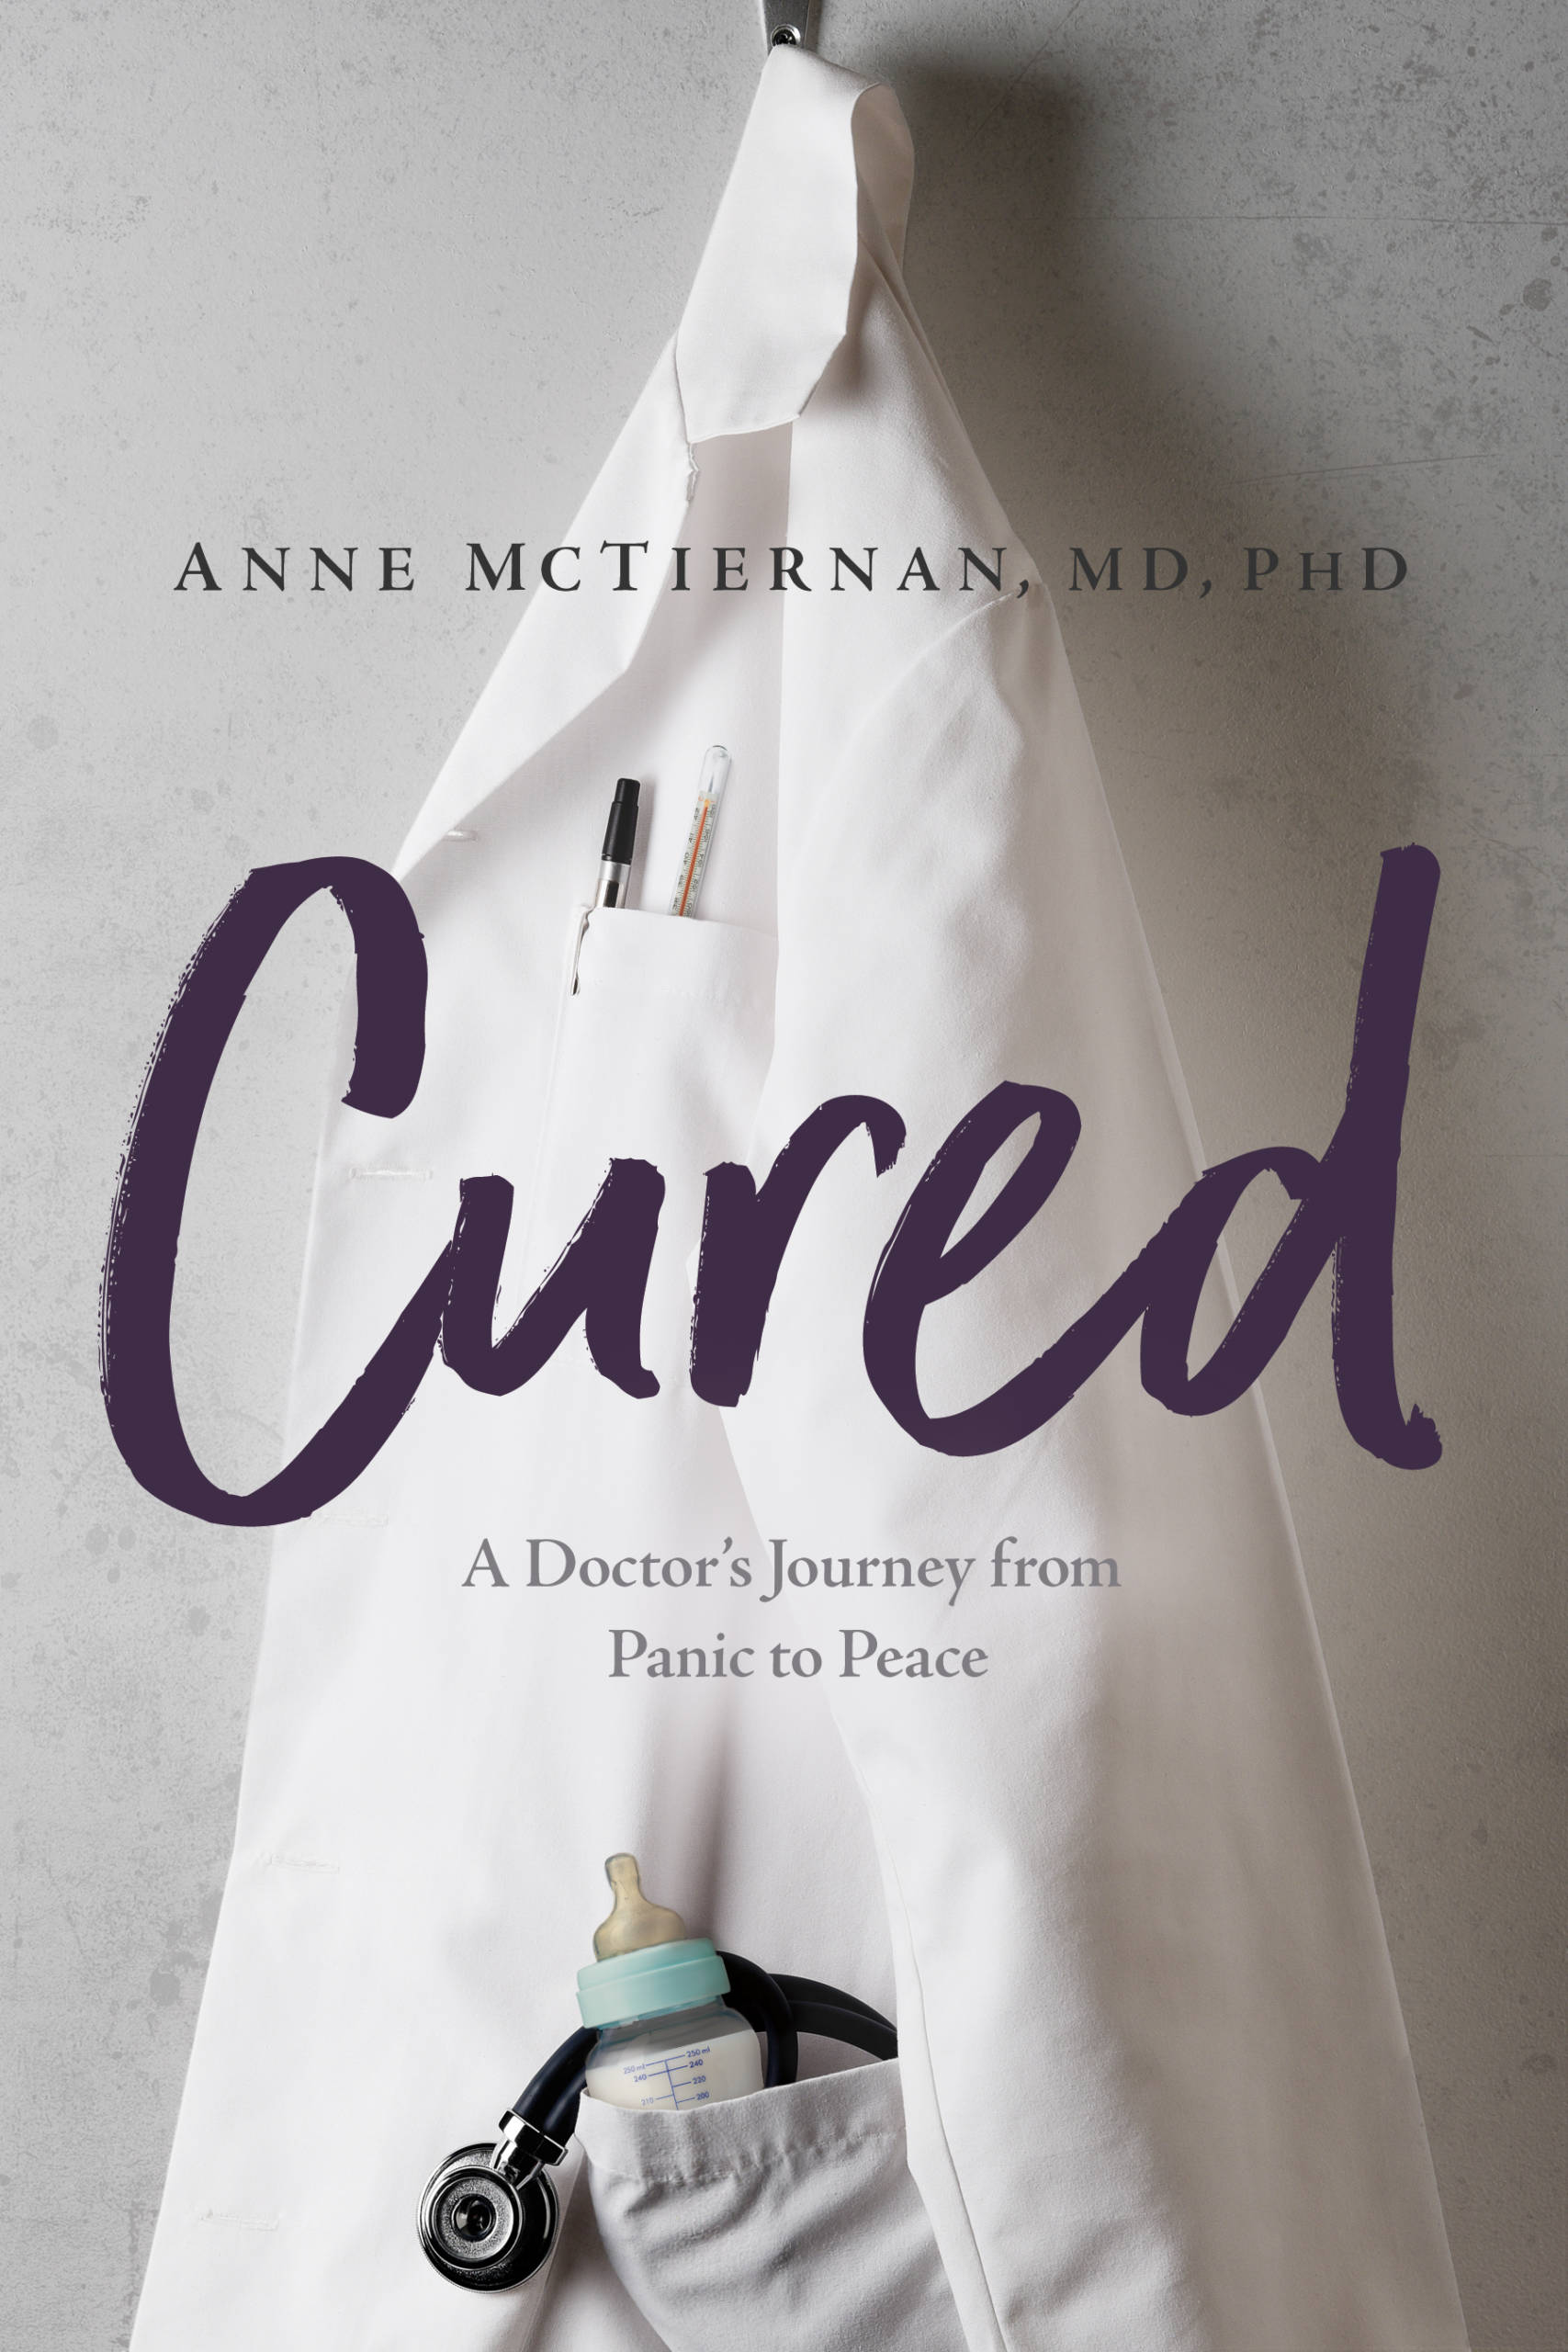 Cured: A Doctor's Journey from Panic to Peace